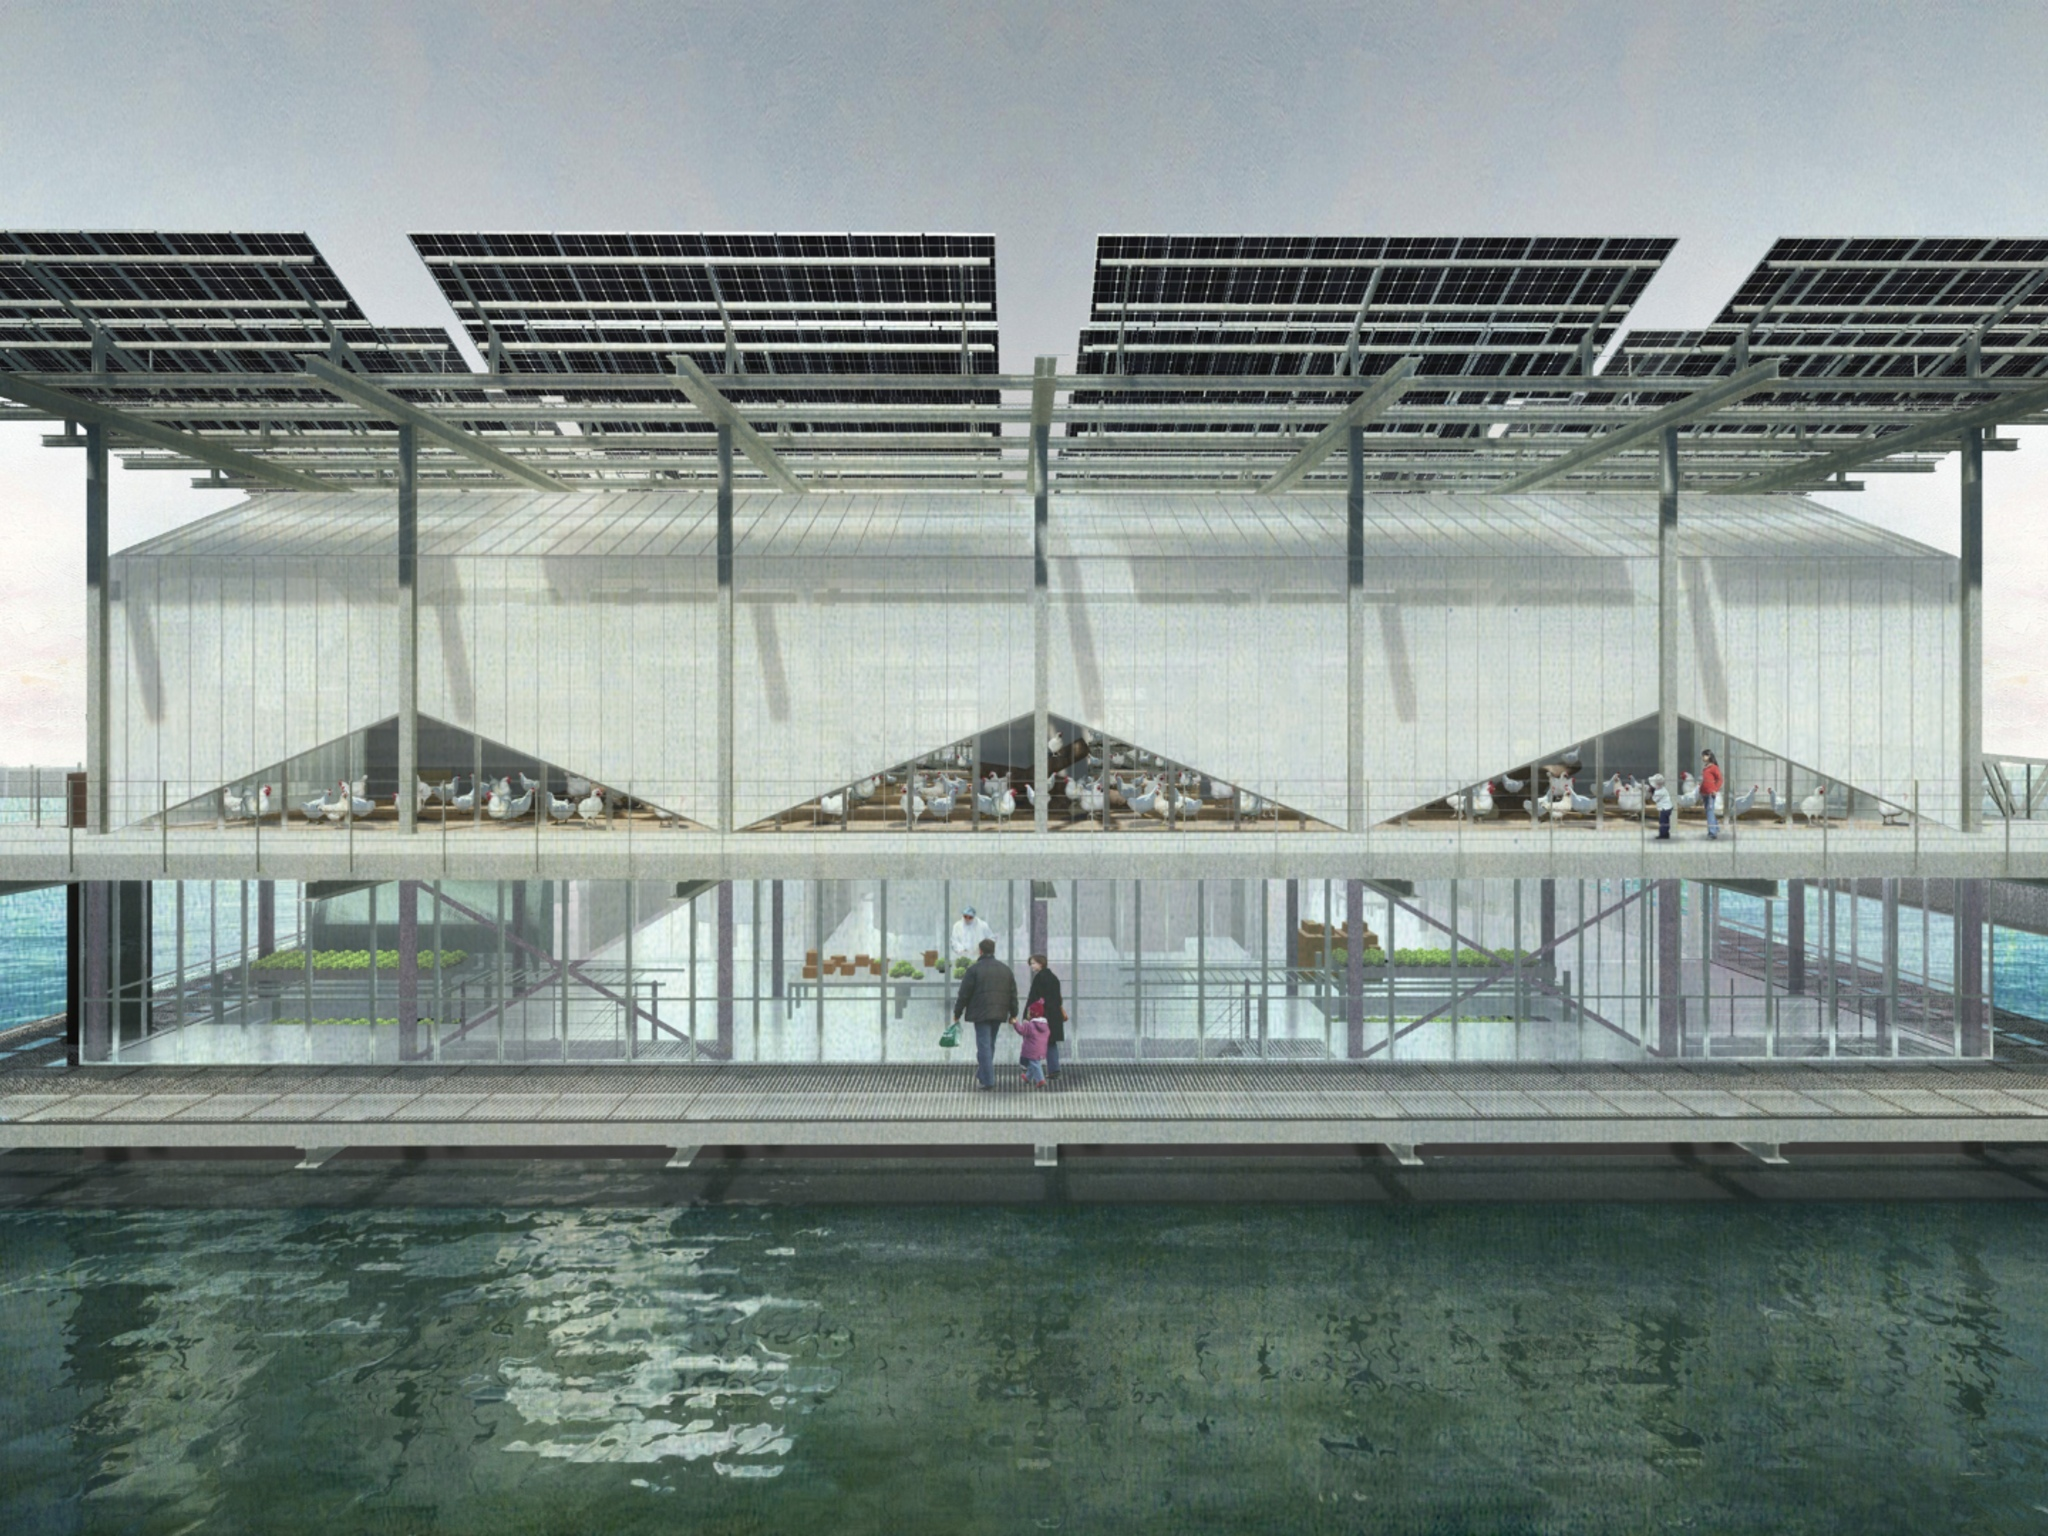 Rotterdam is getting a floating chicken farm